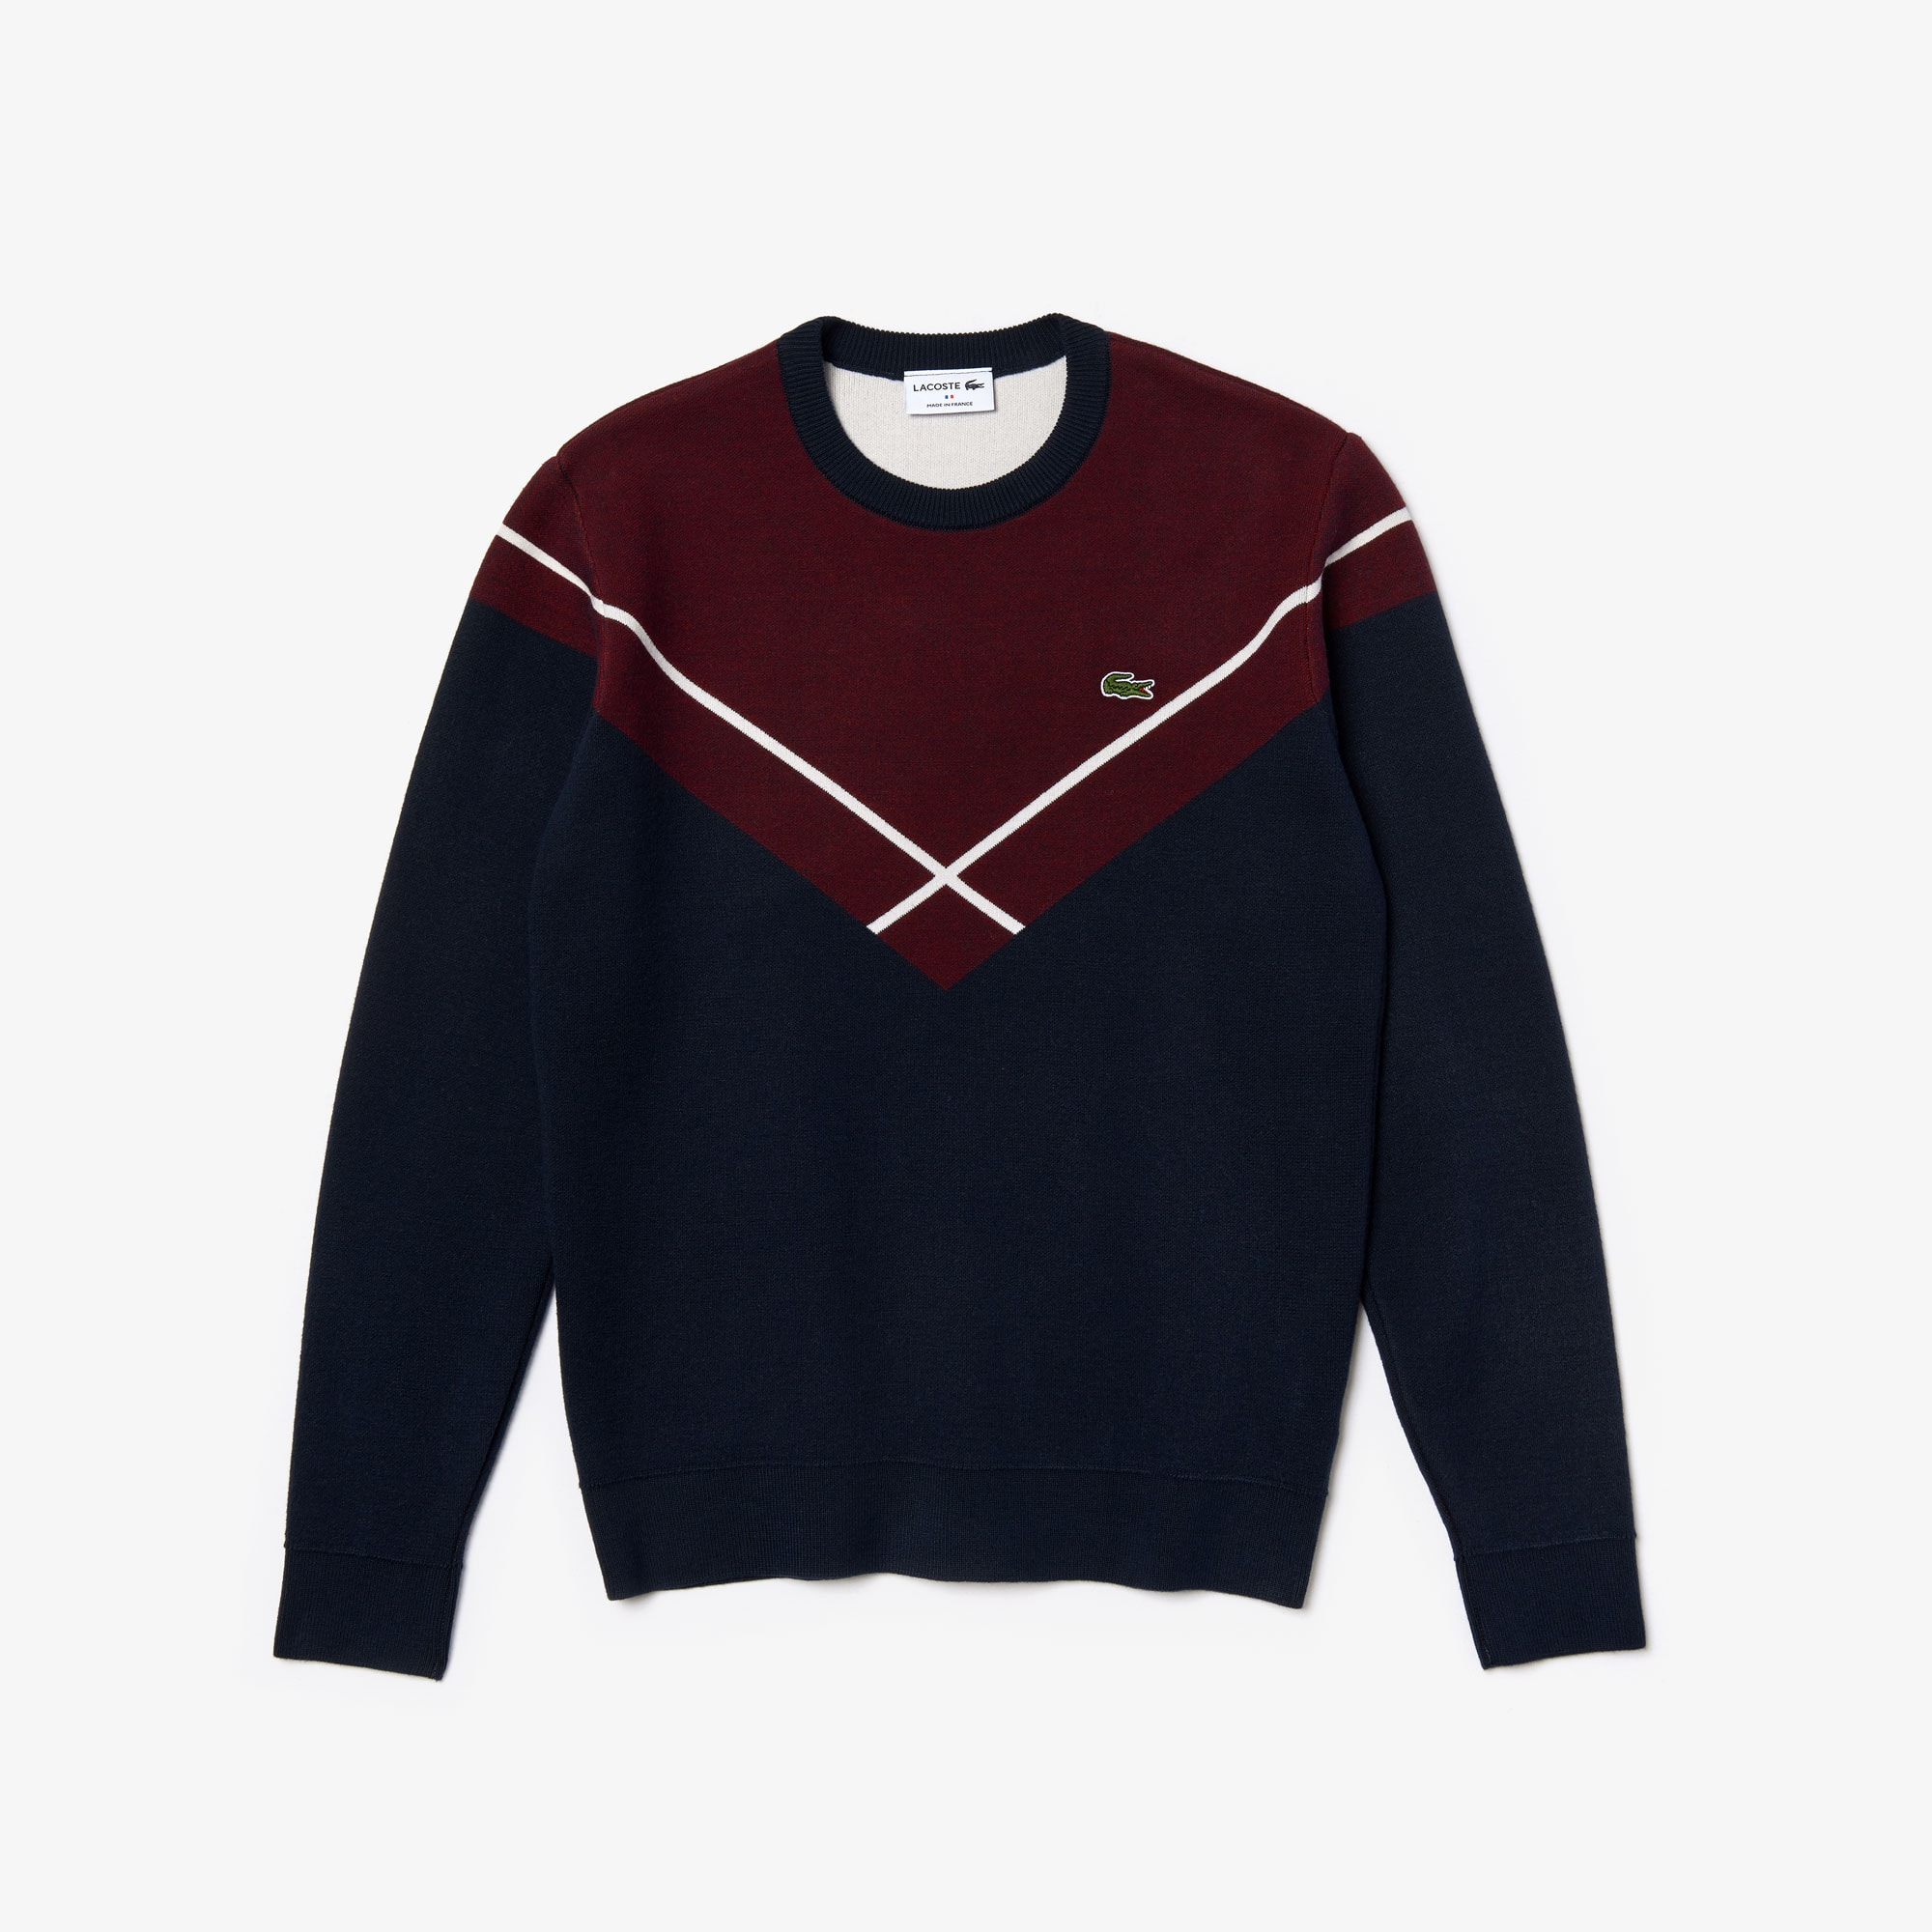 Lacoste Jeans Men's Made In France Crewneck Jacquard Sweater